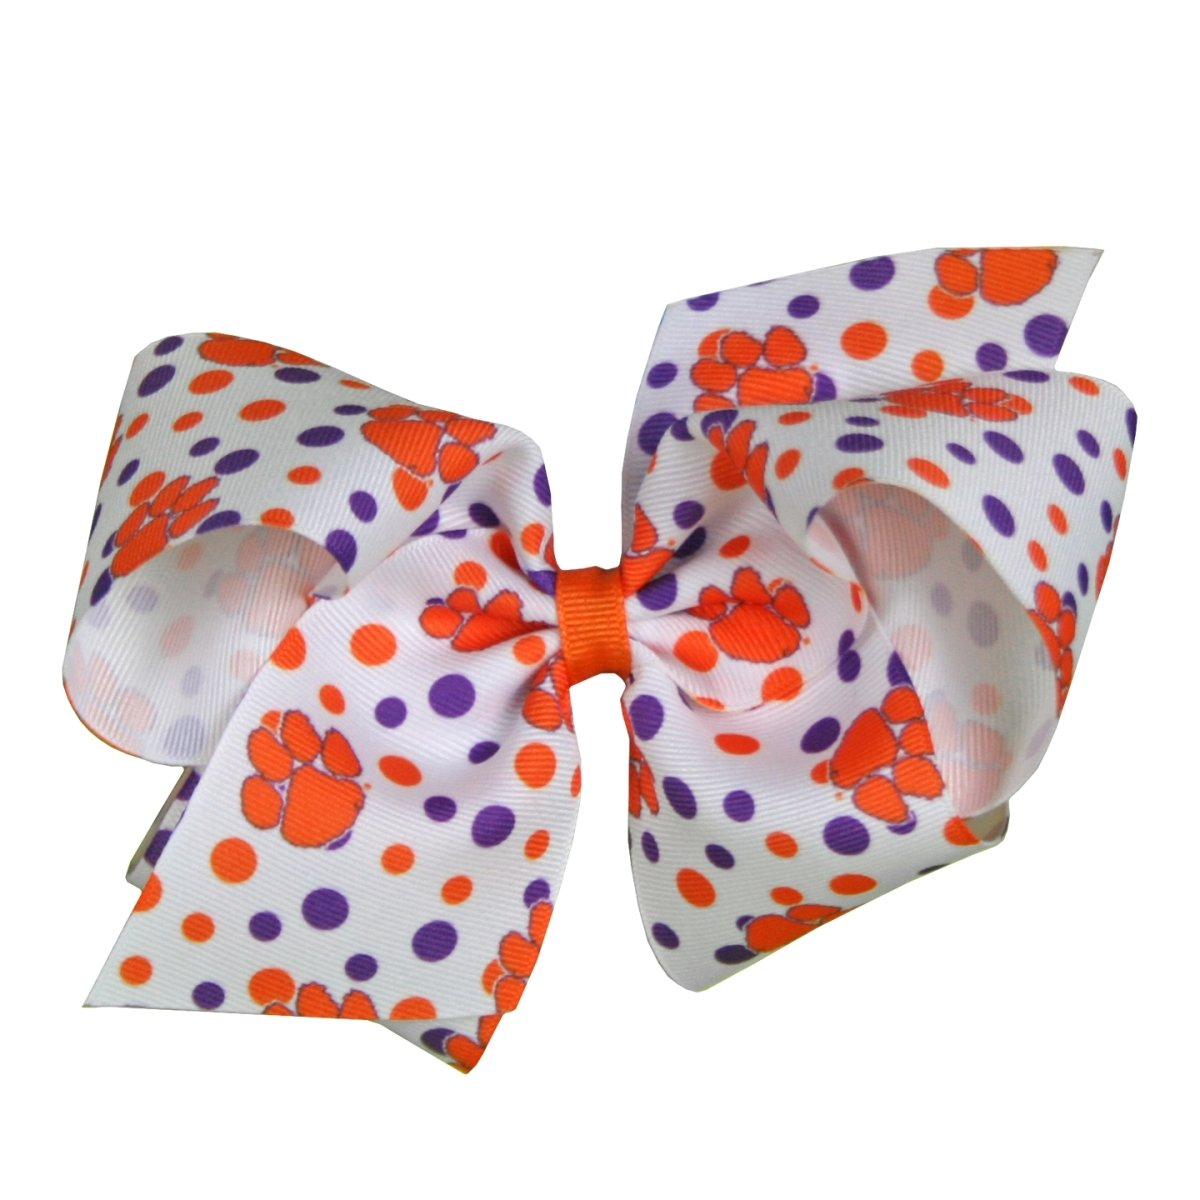 Wee Ones Clemson Tigers All-over-paw and Polka Dot Print Bow - Mr. Knickerbocker